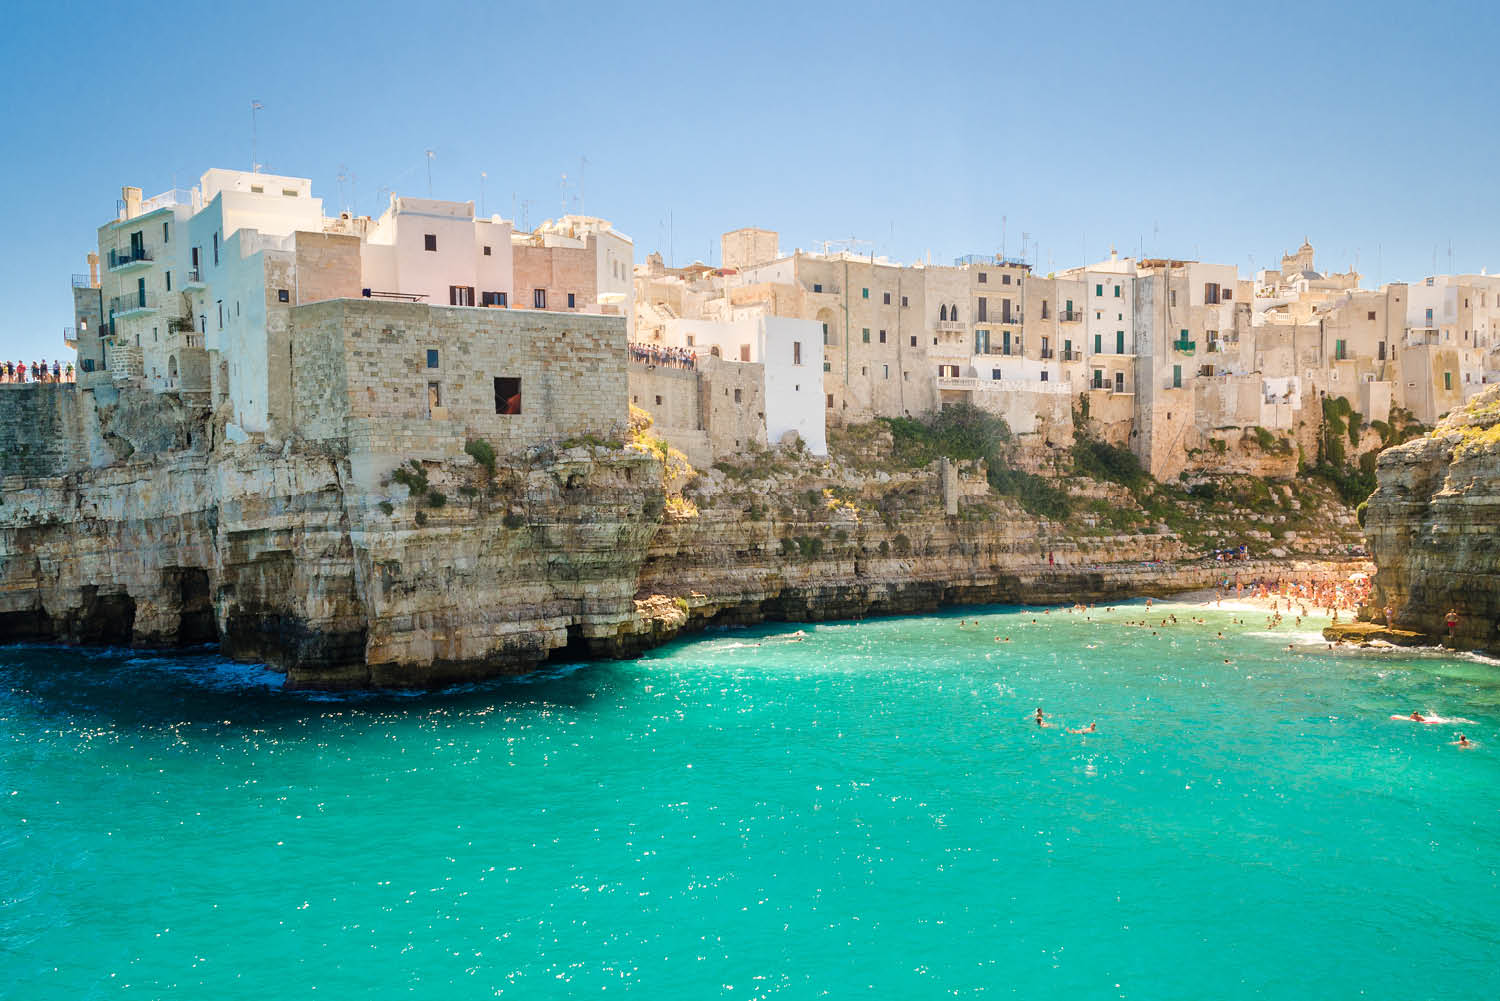 Insider S Guide To The World Puglia Italy International